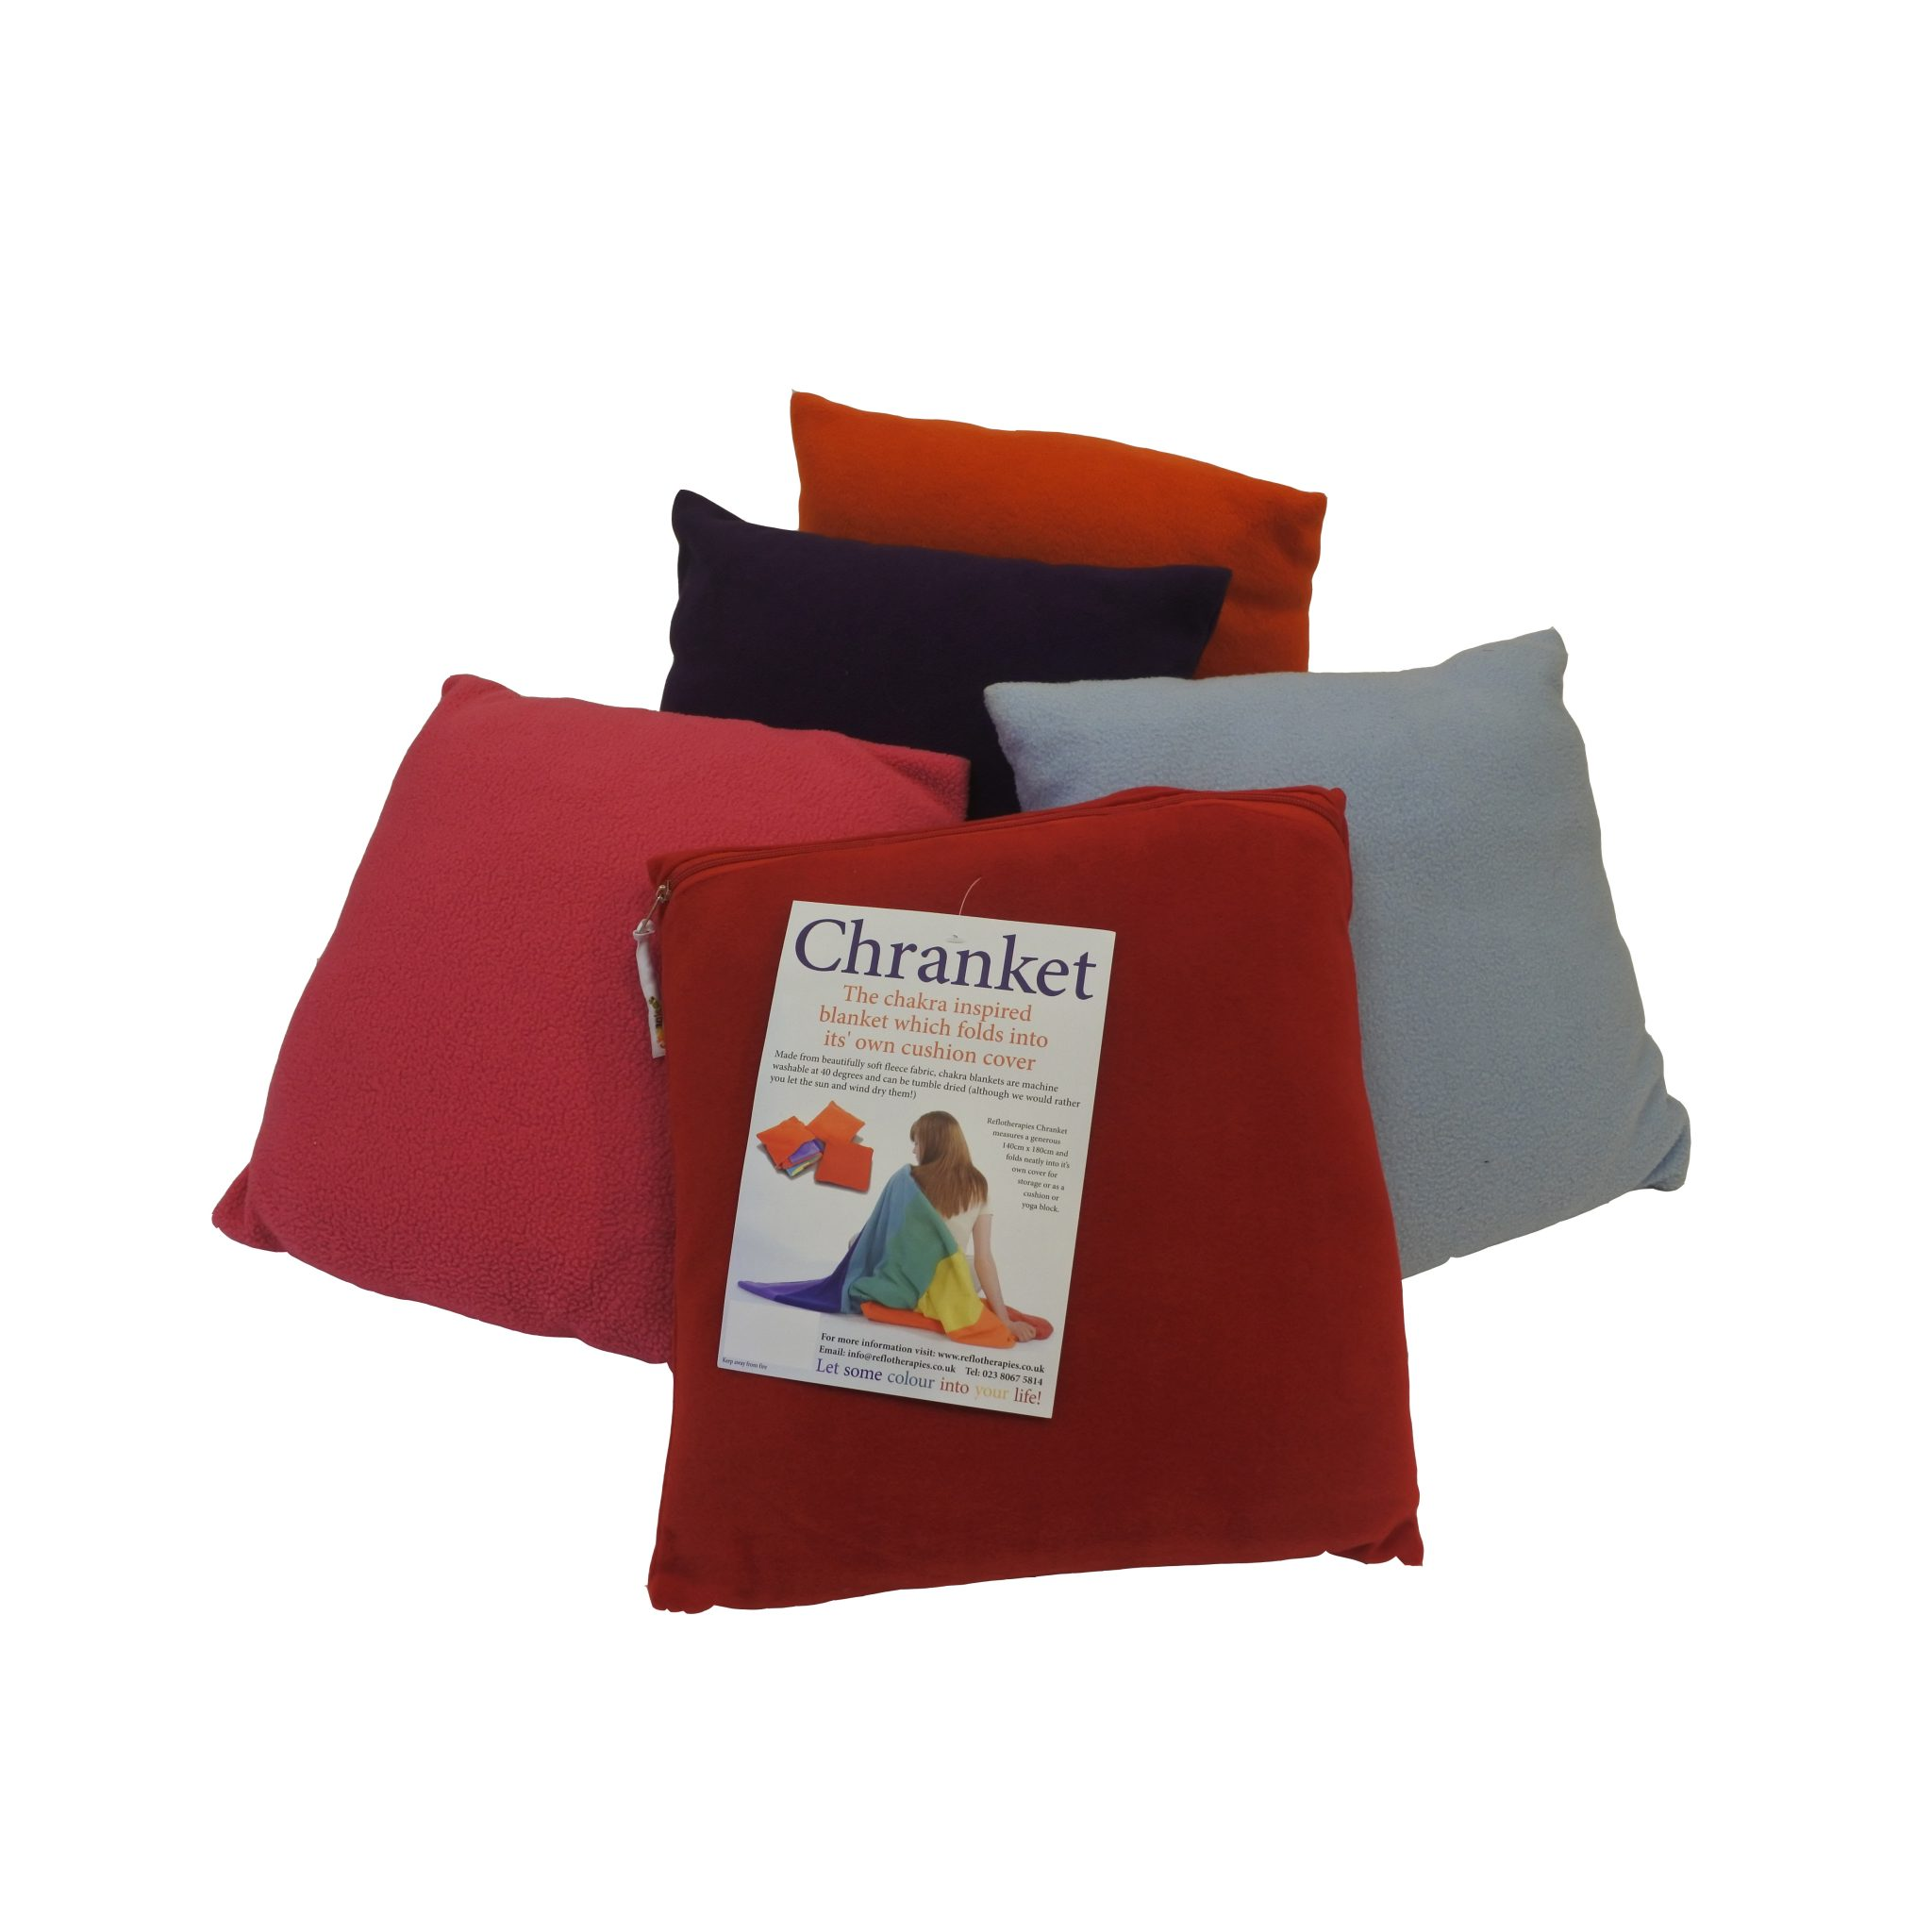 Chranket-Pillow-Group